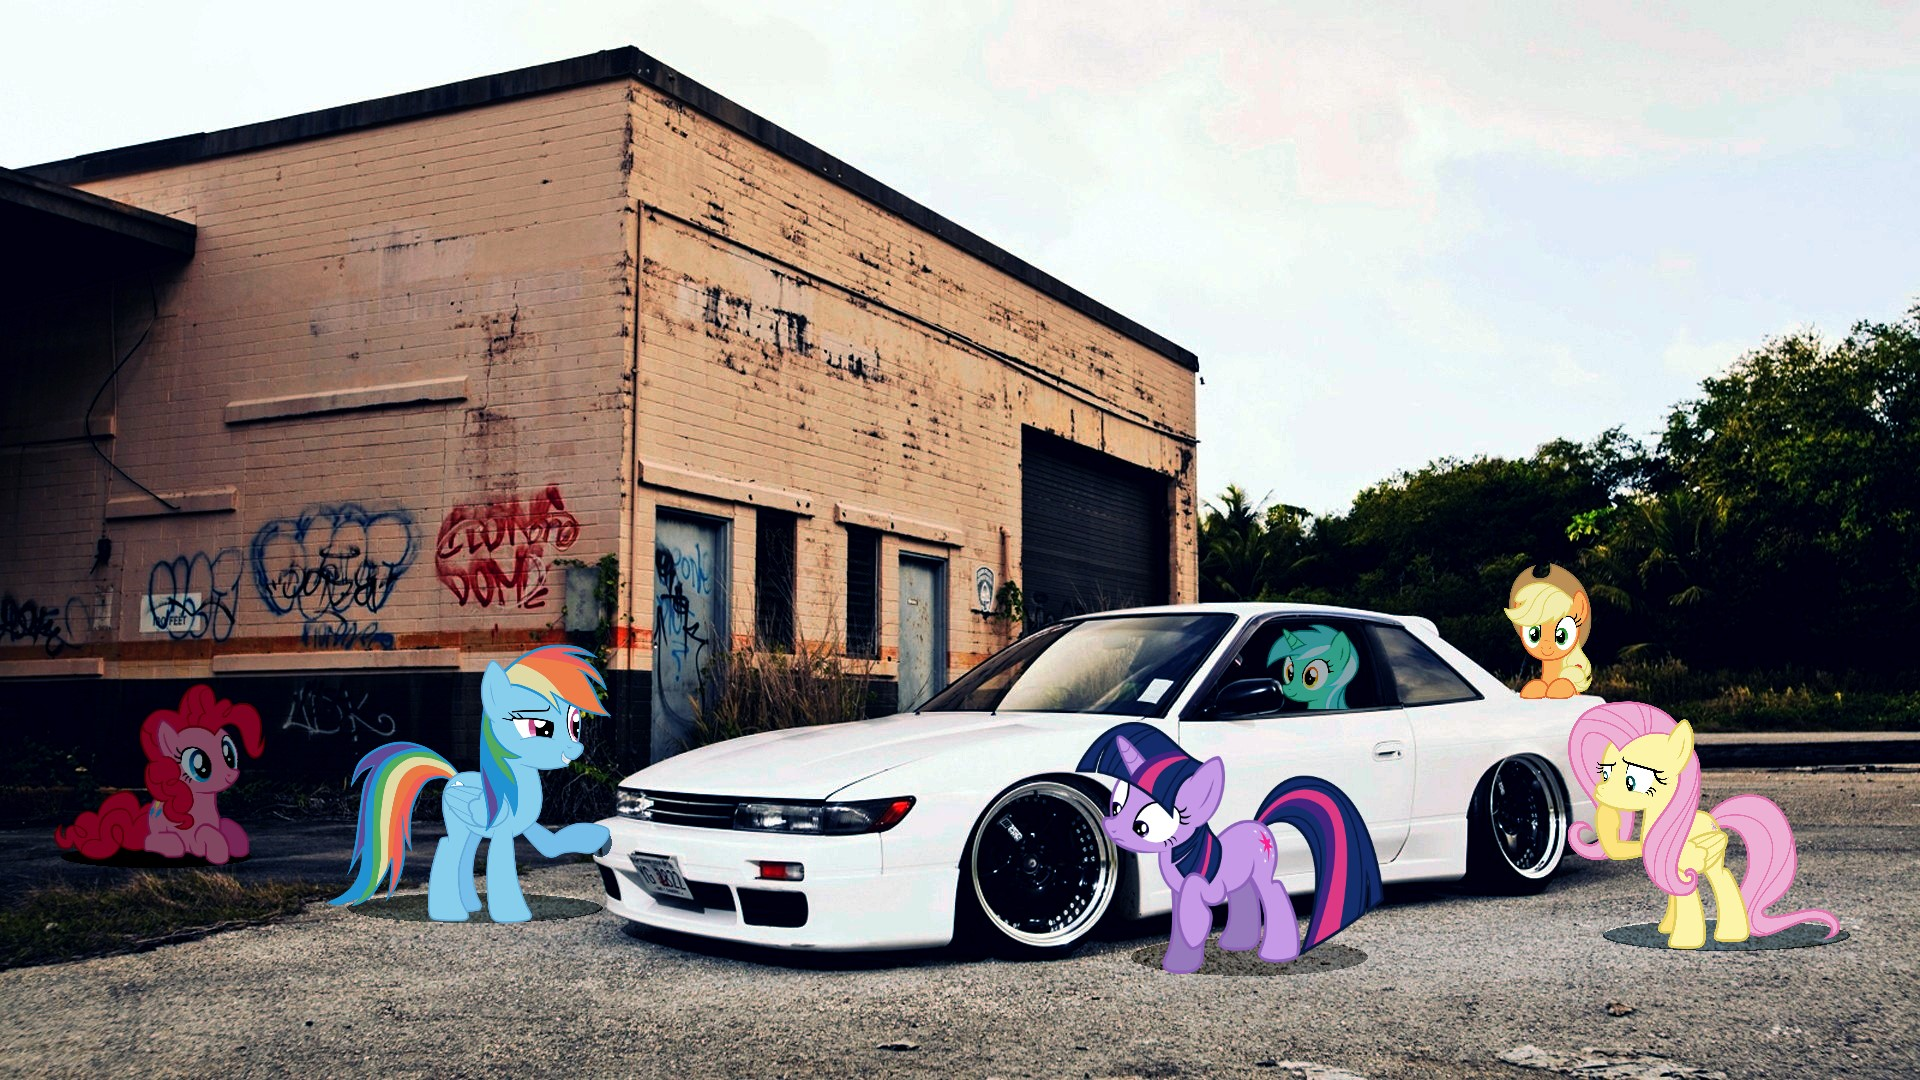 Ponified nissan silvia s13 wallpaper by make451 on deviantart - Nissan silvia s13 wallpaper ...